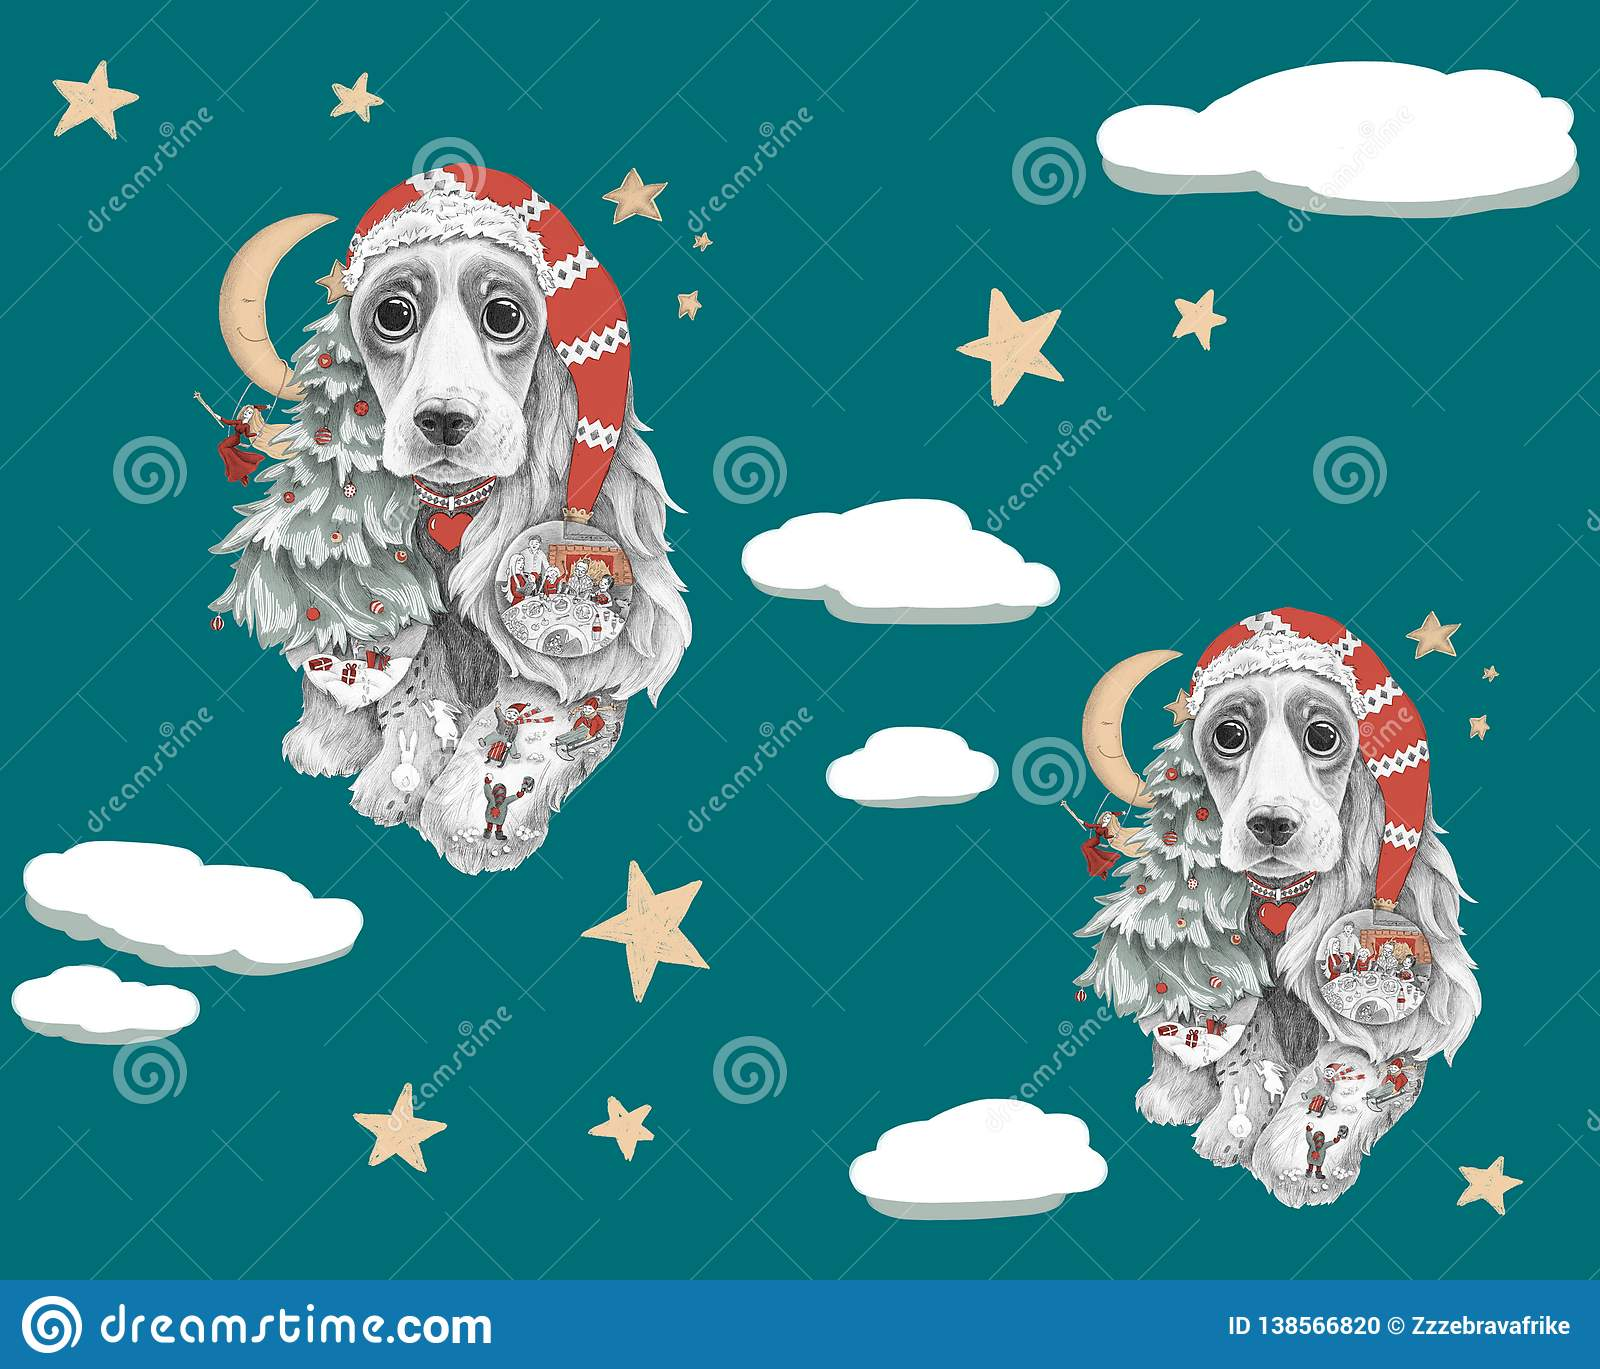 Dog with long ears in a red hat with stars around